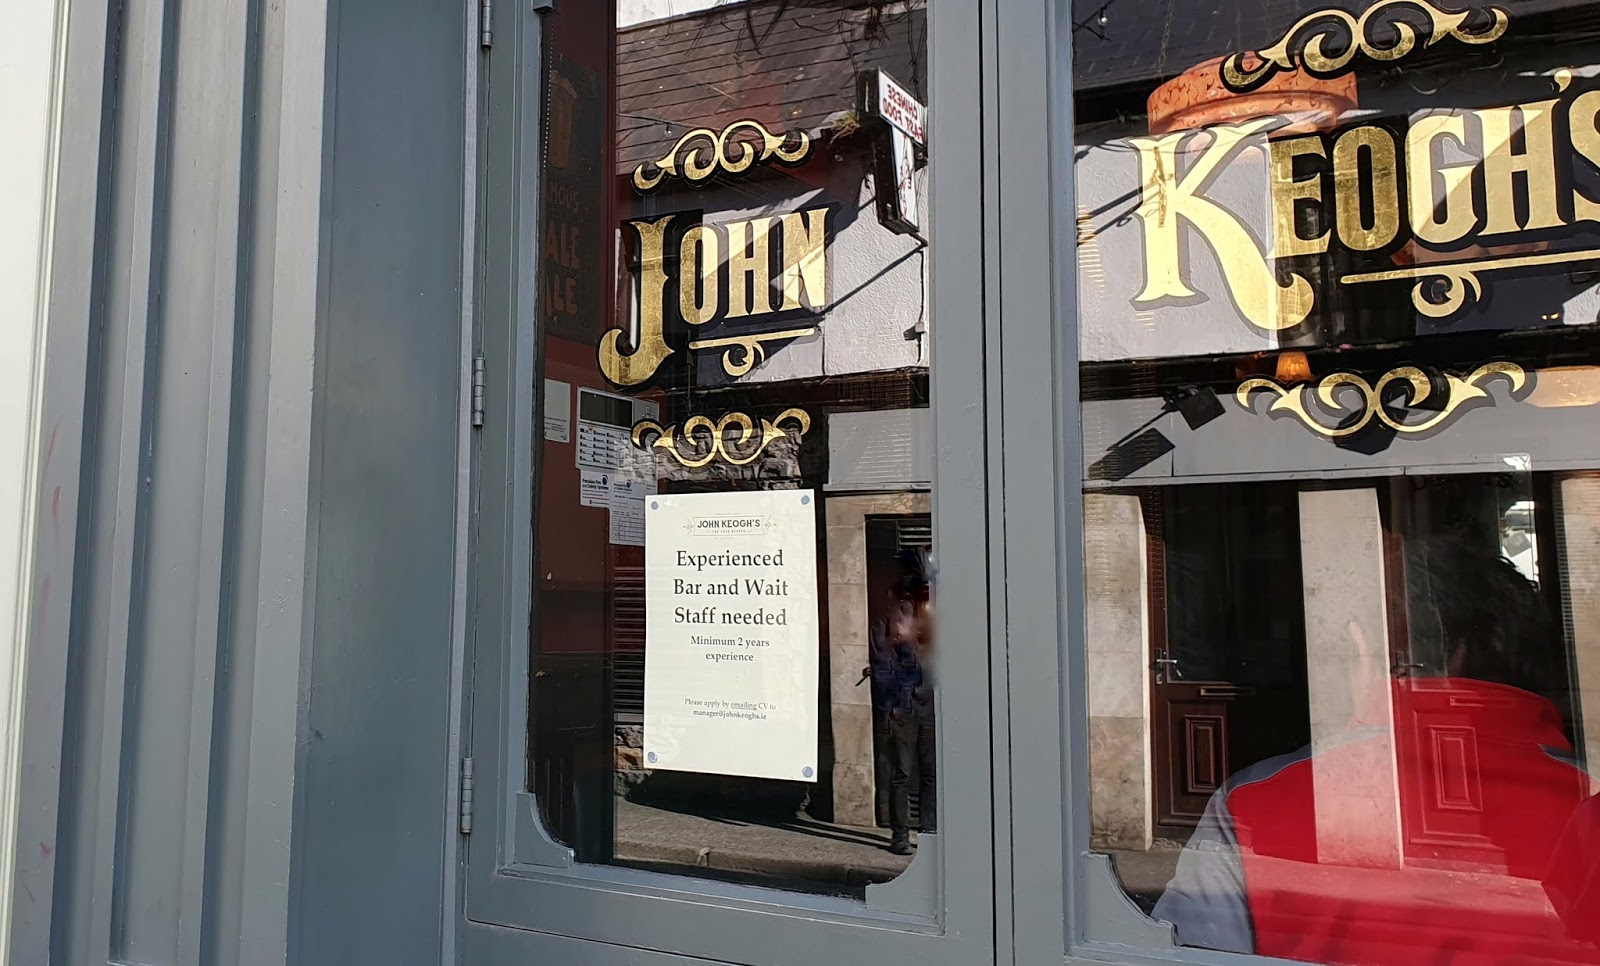 john keogh pub name in golden old-time lettering on a pub window